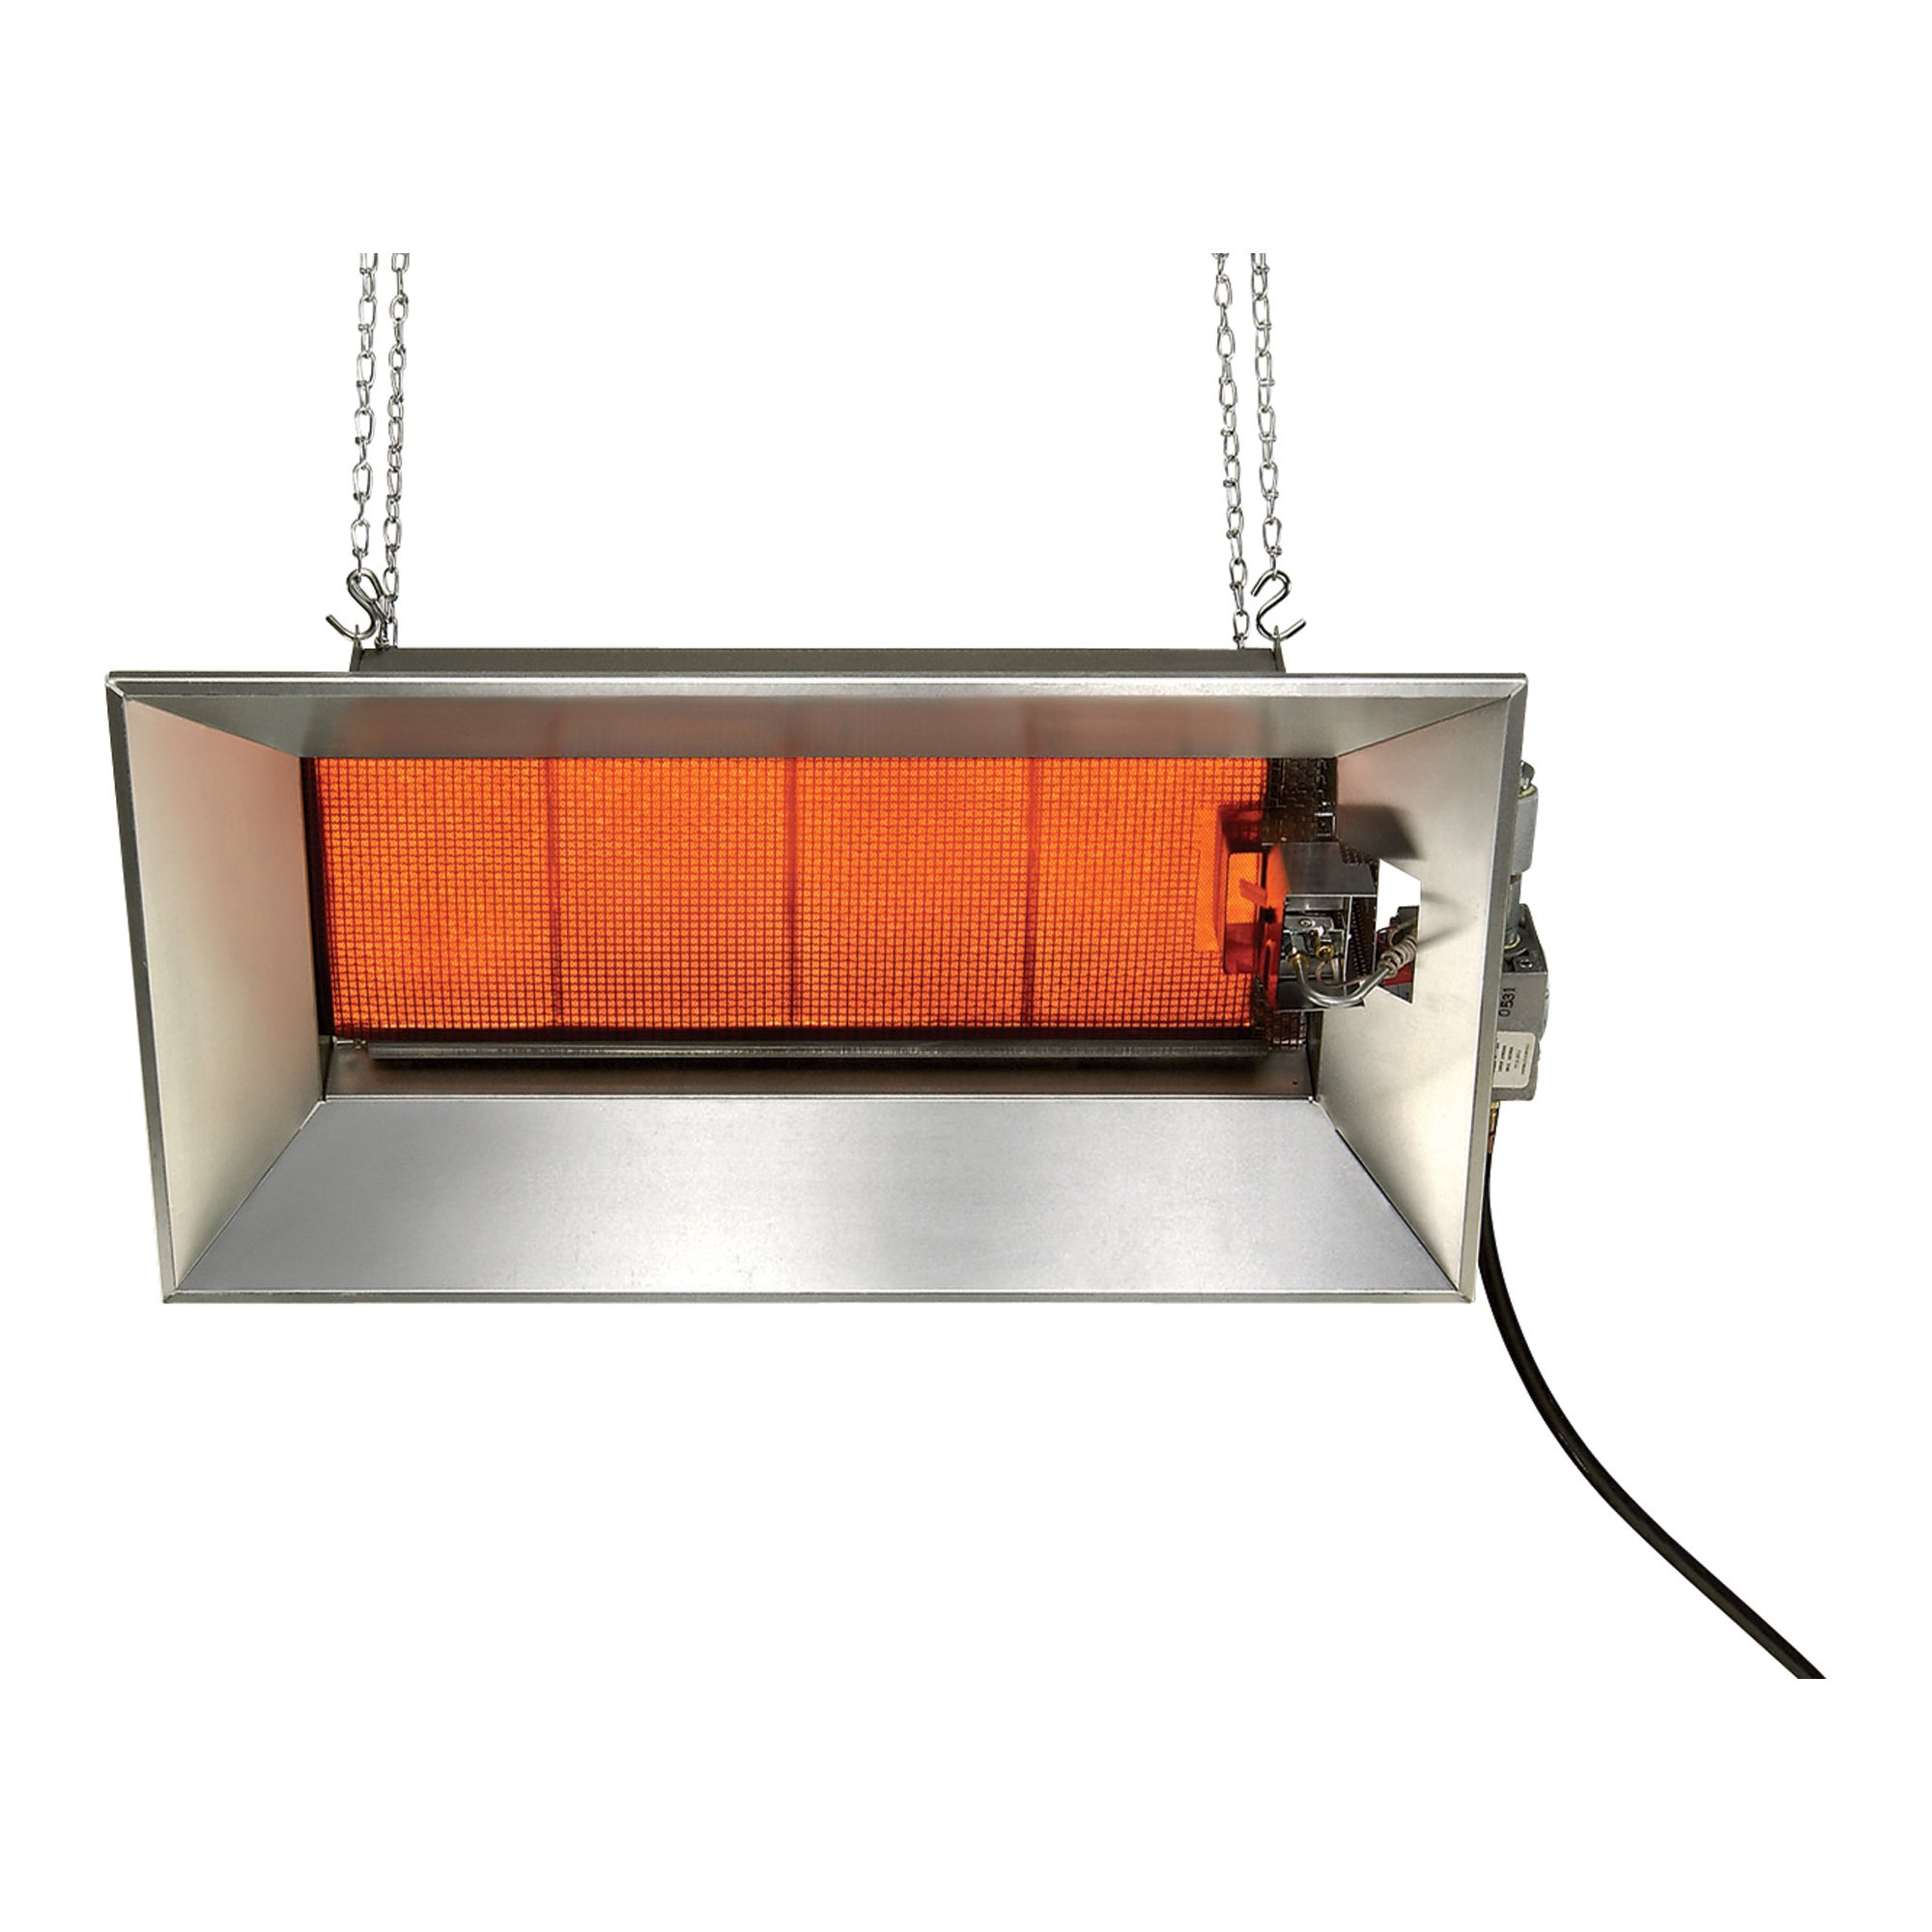 SunStar Heating Products Infrared Ceramic Heater — NG, 52,000 BTU ...